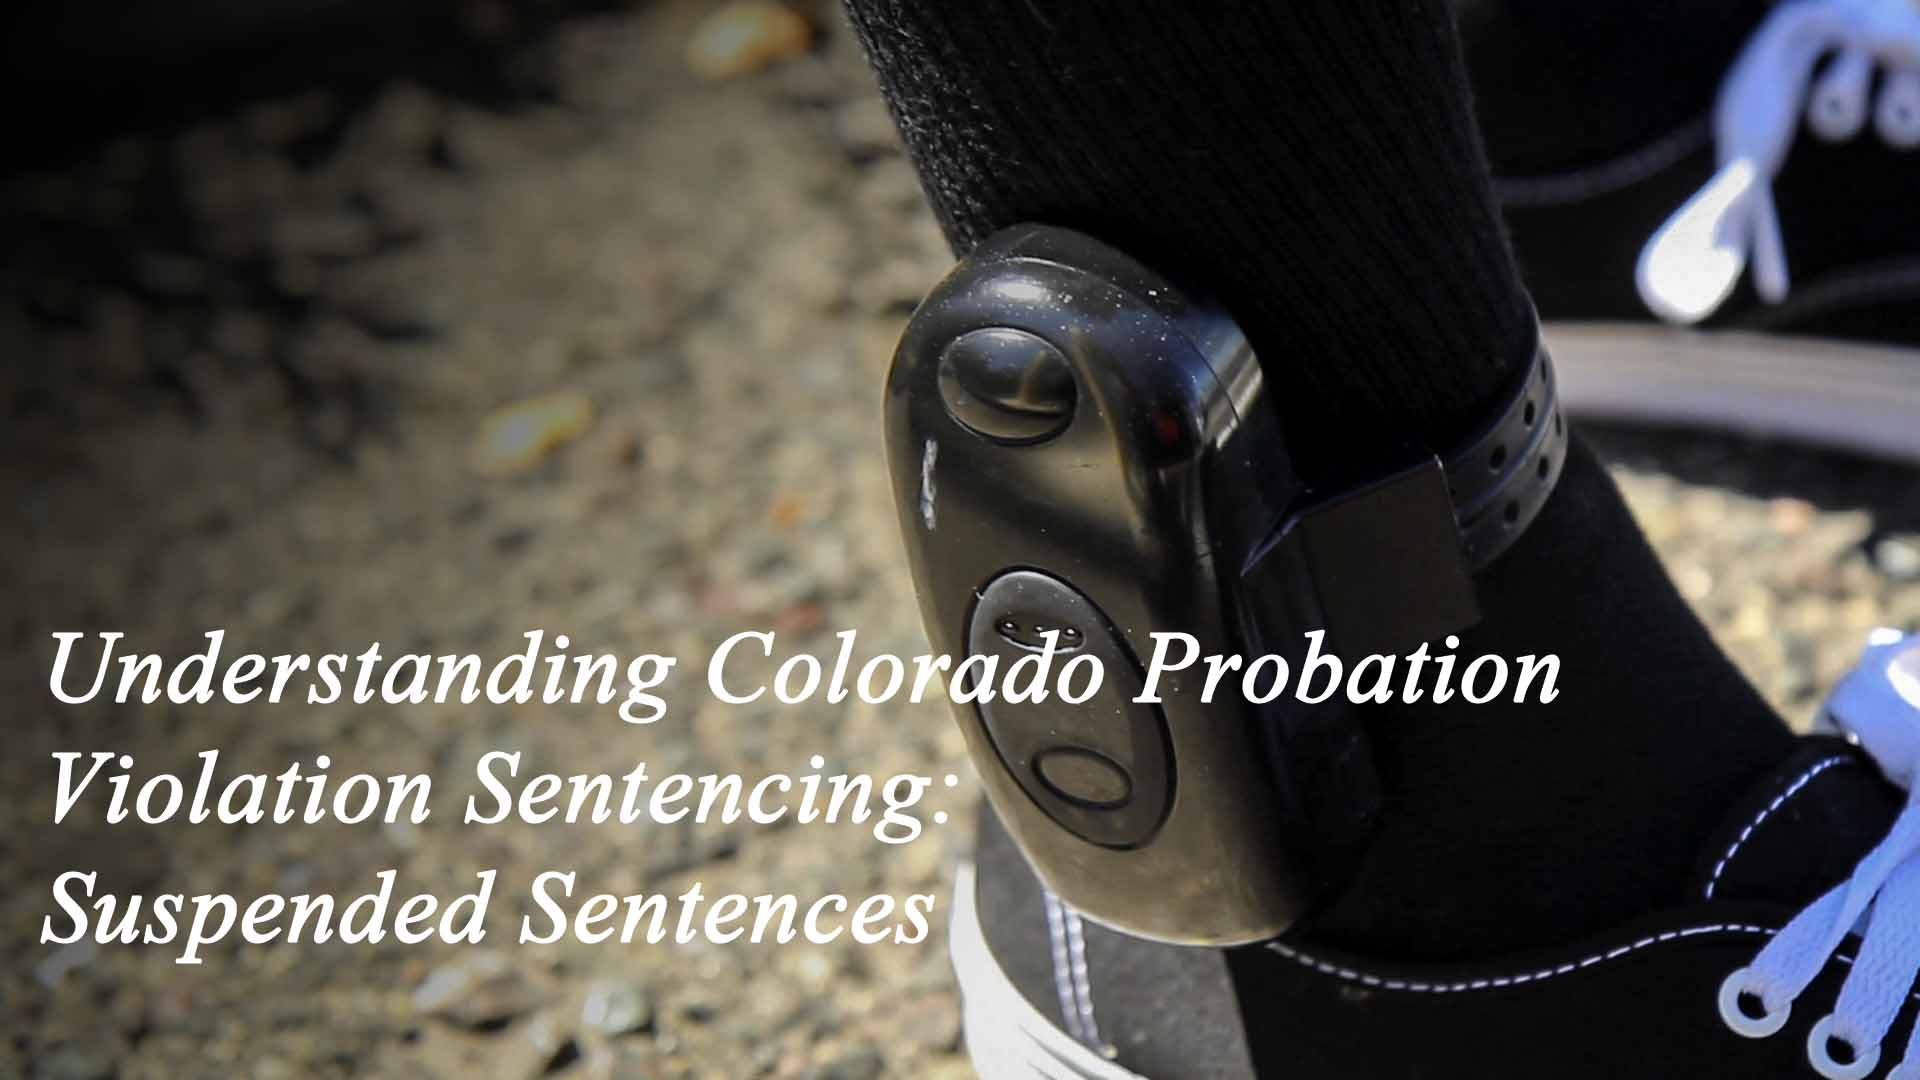 Colorado Probation Violation Law - Impact Of A Suspended Sentence